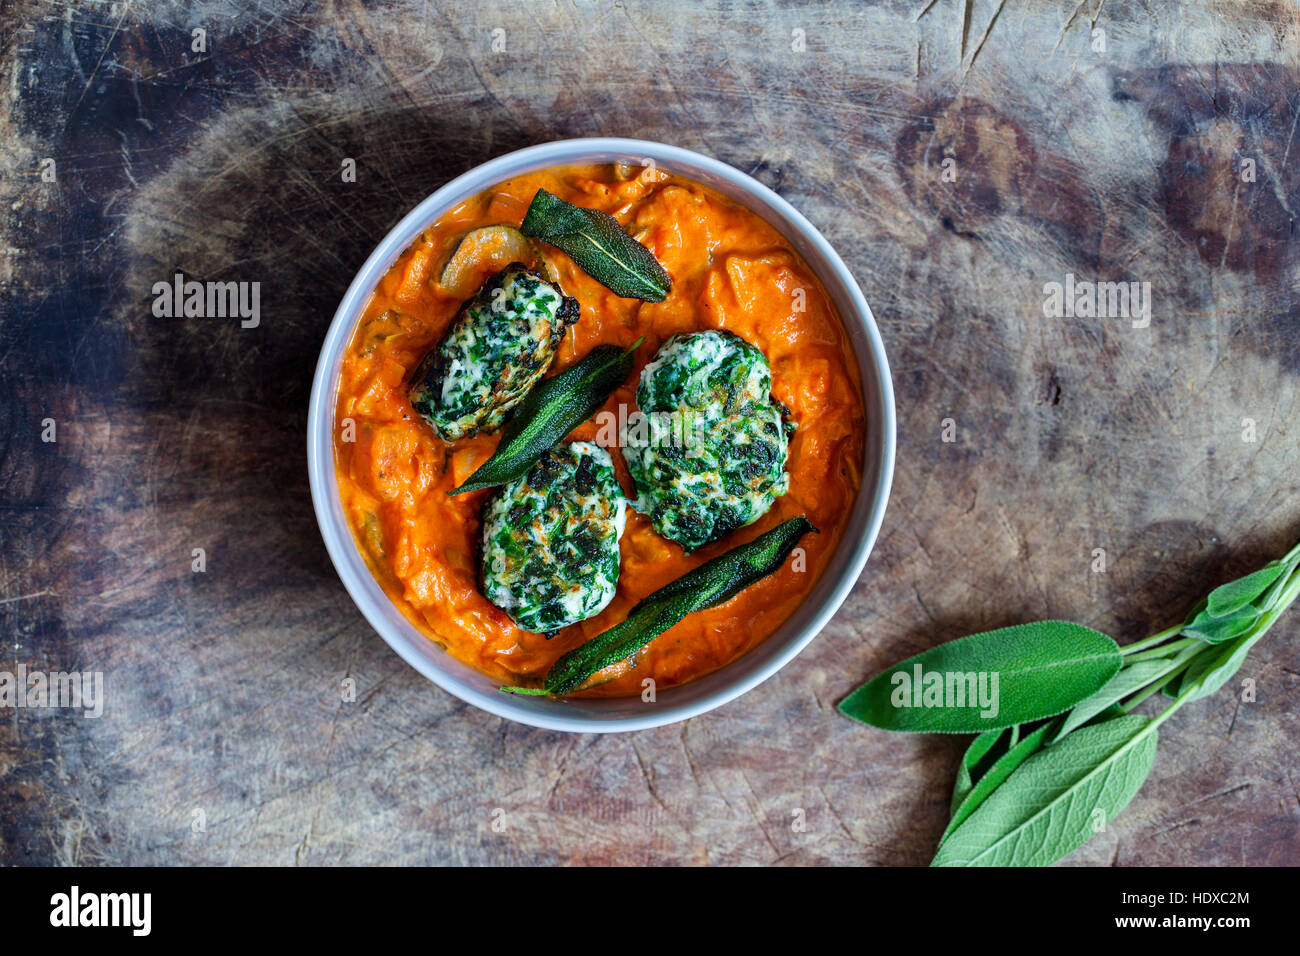 Spinach and ricotta dumplings in tomato and courgette sauce - Stock Image